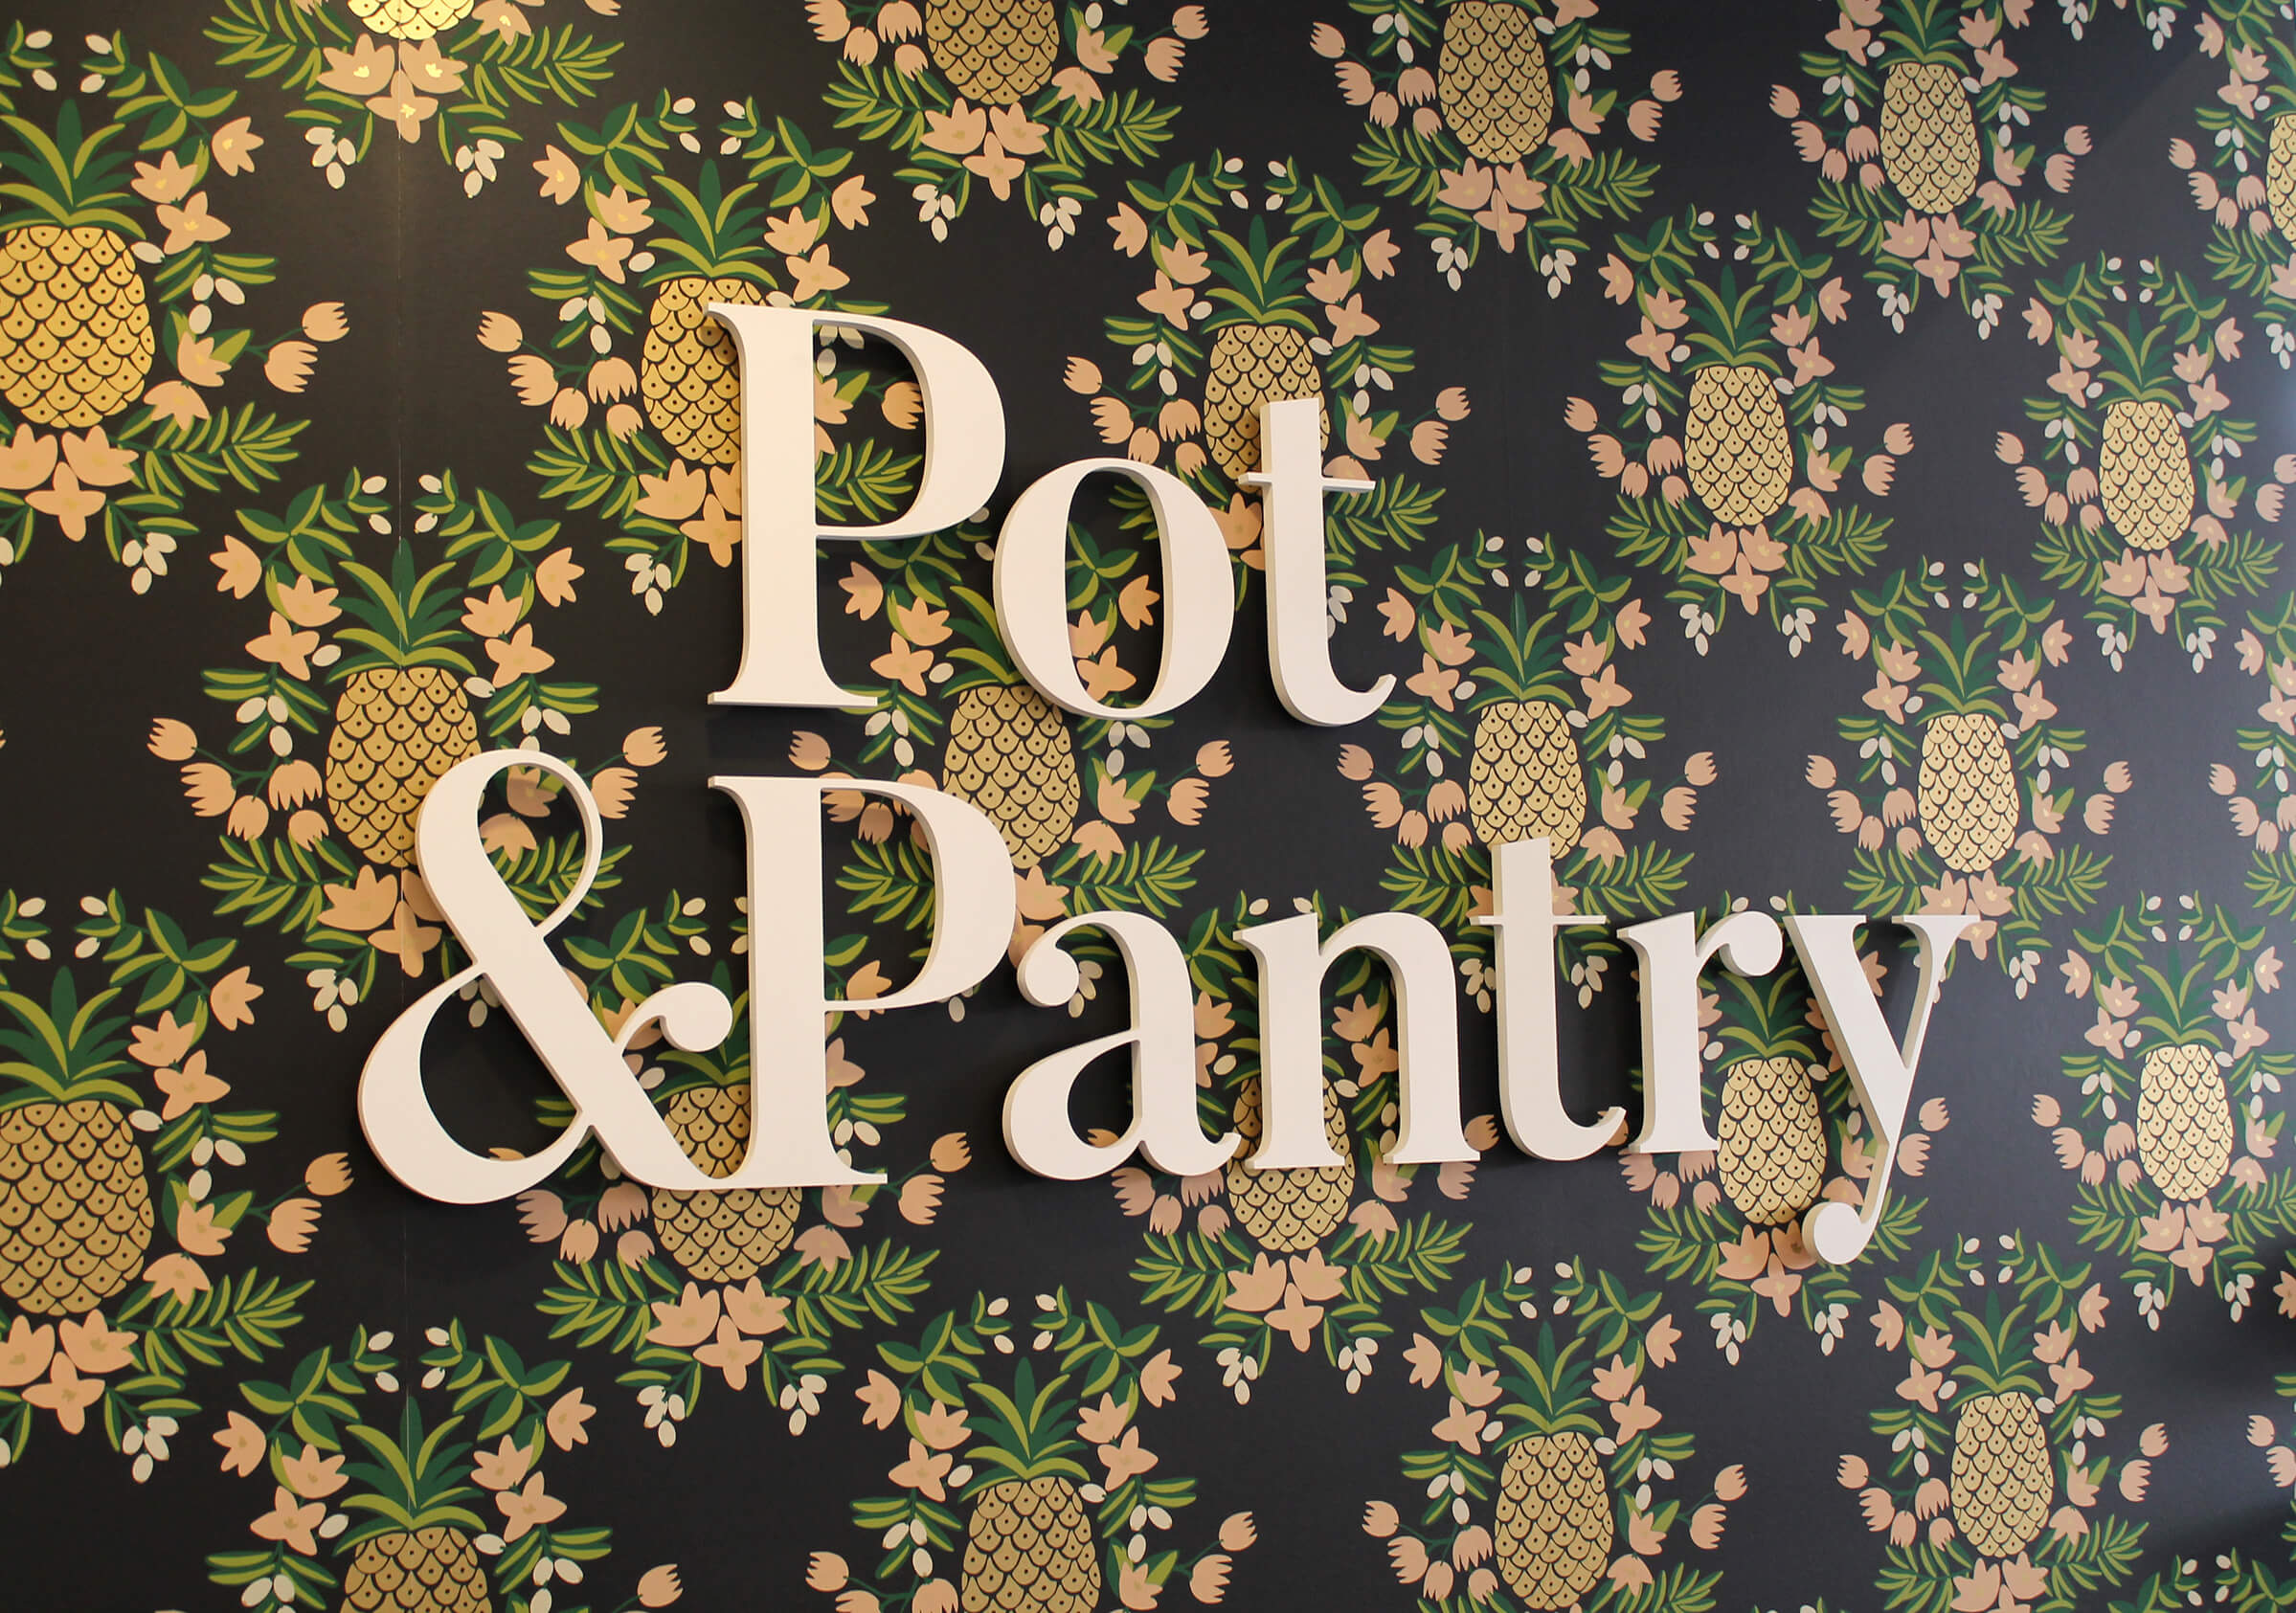 Pot&Pantry Indoor Signage by Ottawa Graphic Designer idApostle